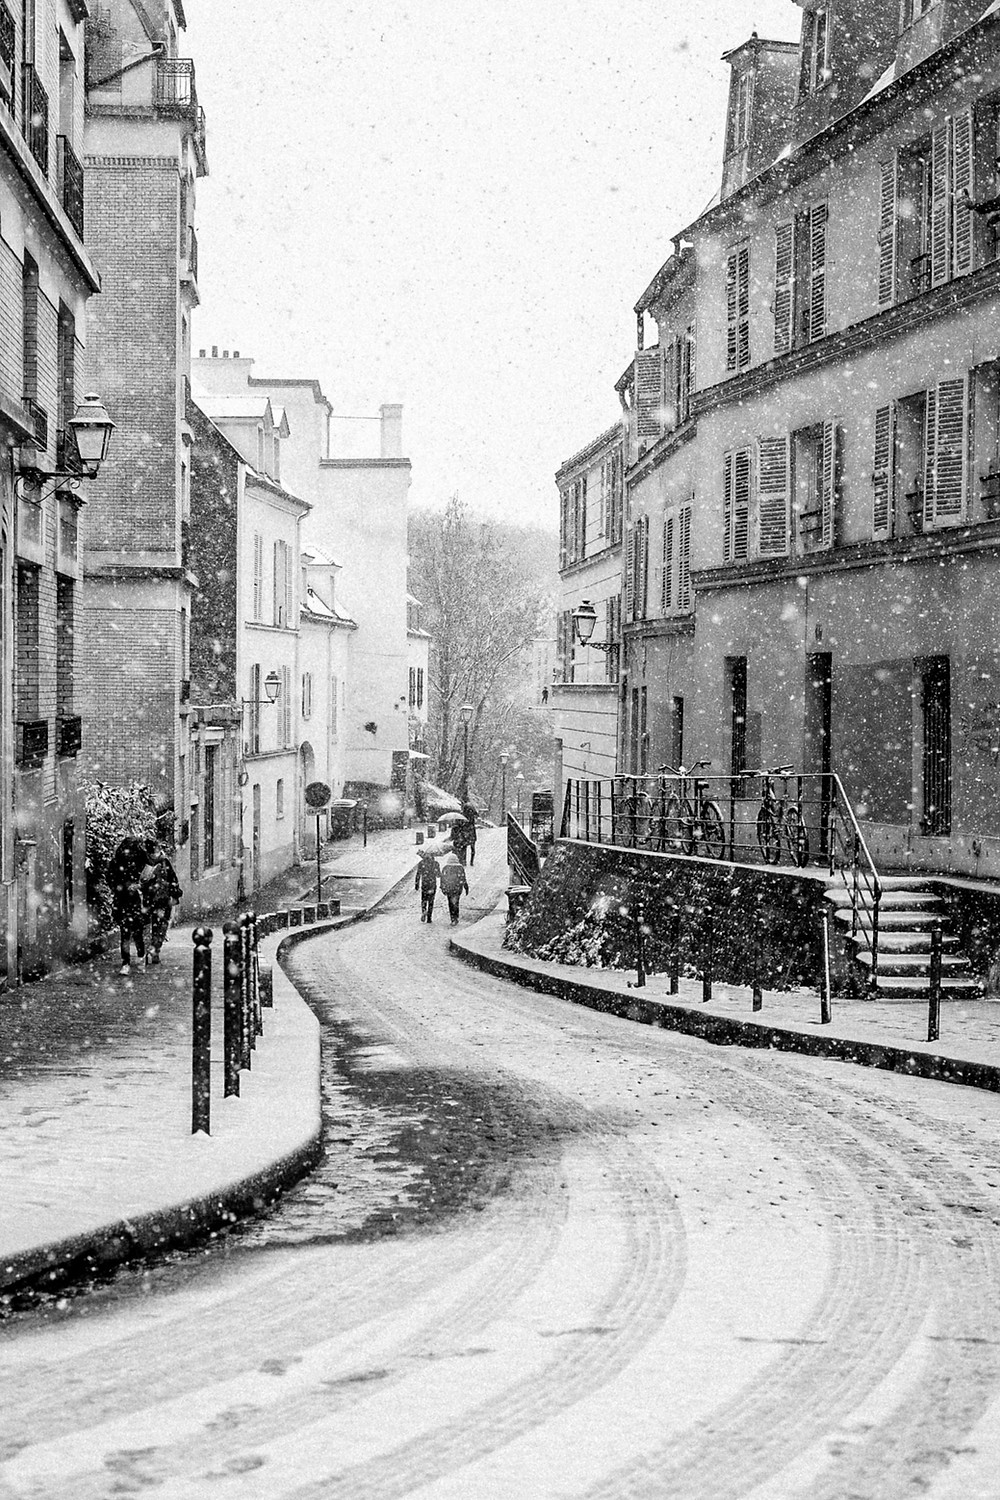 snow in paris 2021 black and white photo